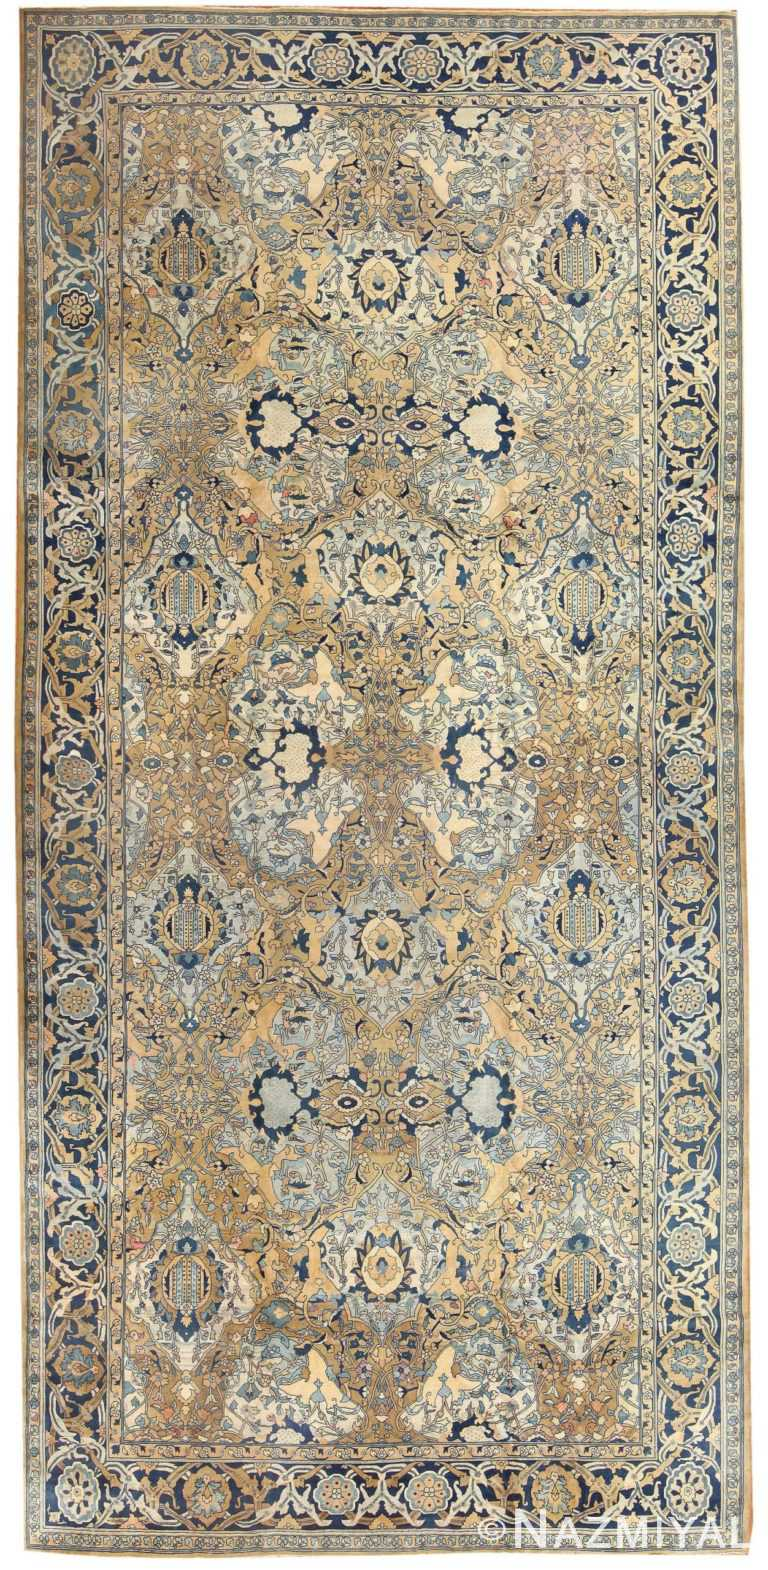 Antique Persian Kerman Carpet 50099 Detail/Large View